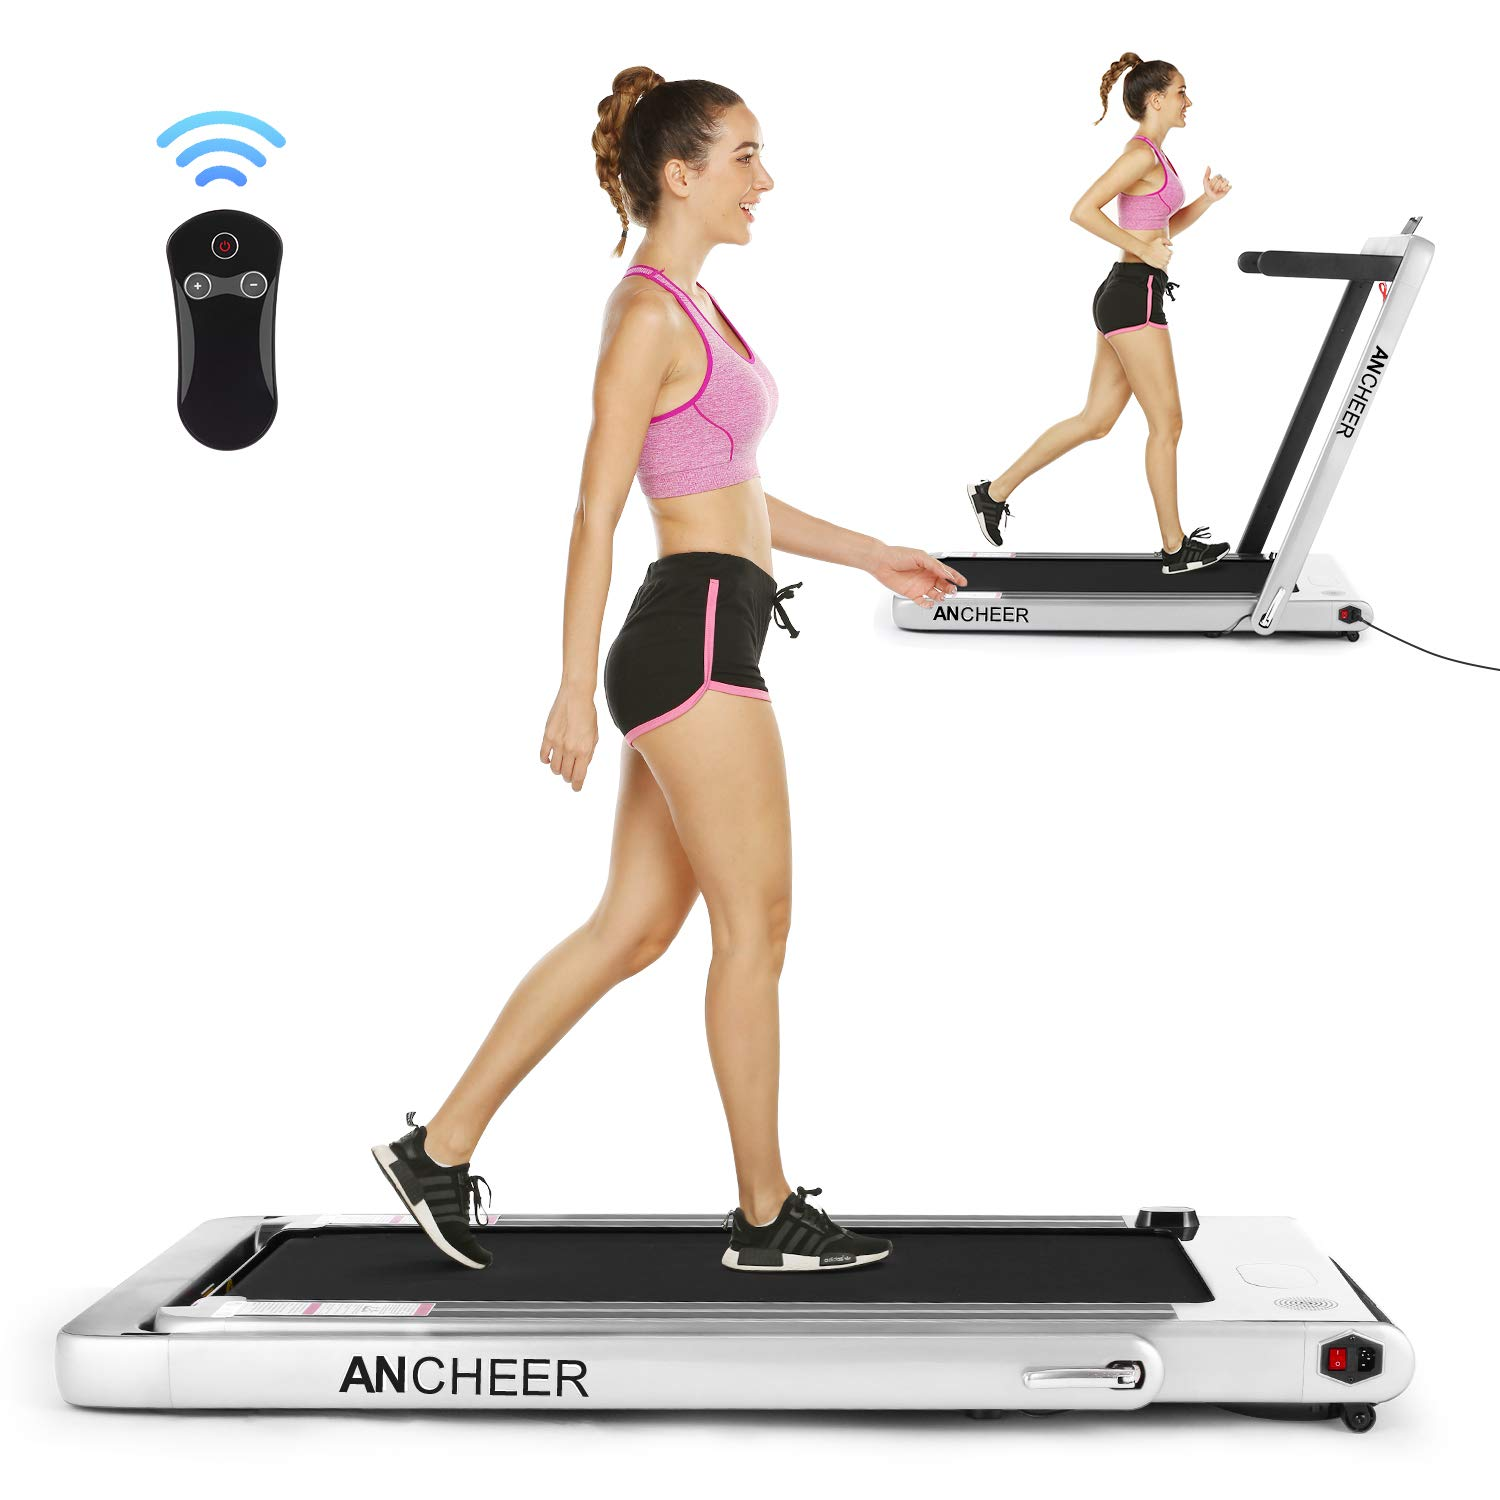 ANCHEER Folding Treadmill, Under Desk Smart Electric Treadmill with Remote Control and Bluetooth Speaker & LCD Monitor, 2 in 1 Walking Running Machine Trainer Equipment for Home Gym (Silver) by ANCHEER